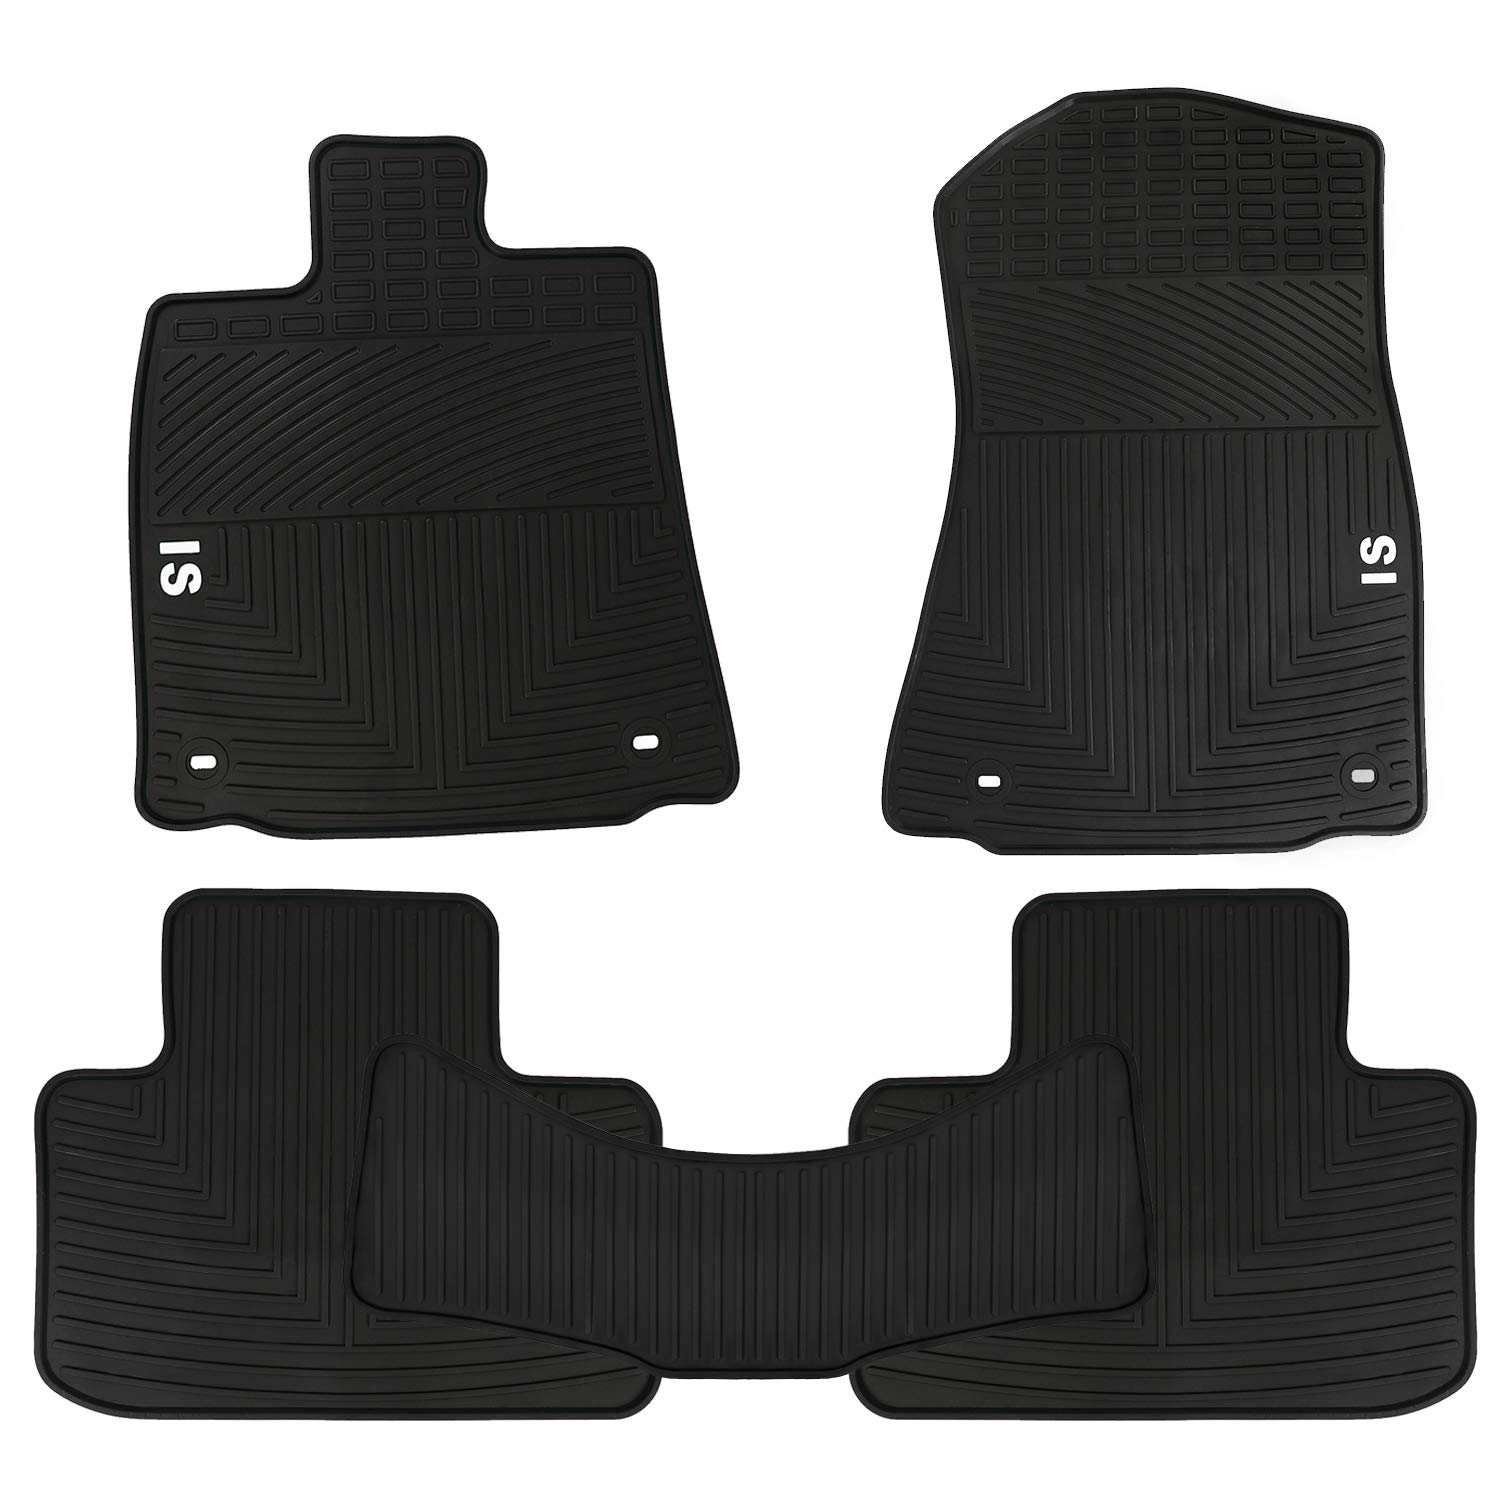 San Auto Car Floor Mats Compatible with Lexus IS 200T 300H 2013 2014 2015 2016 2017 2018 2019 Custom Fit for Black White Rubber Car Floor Liners Set All Weather